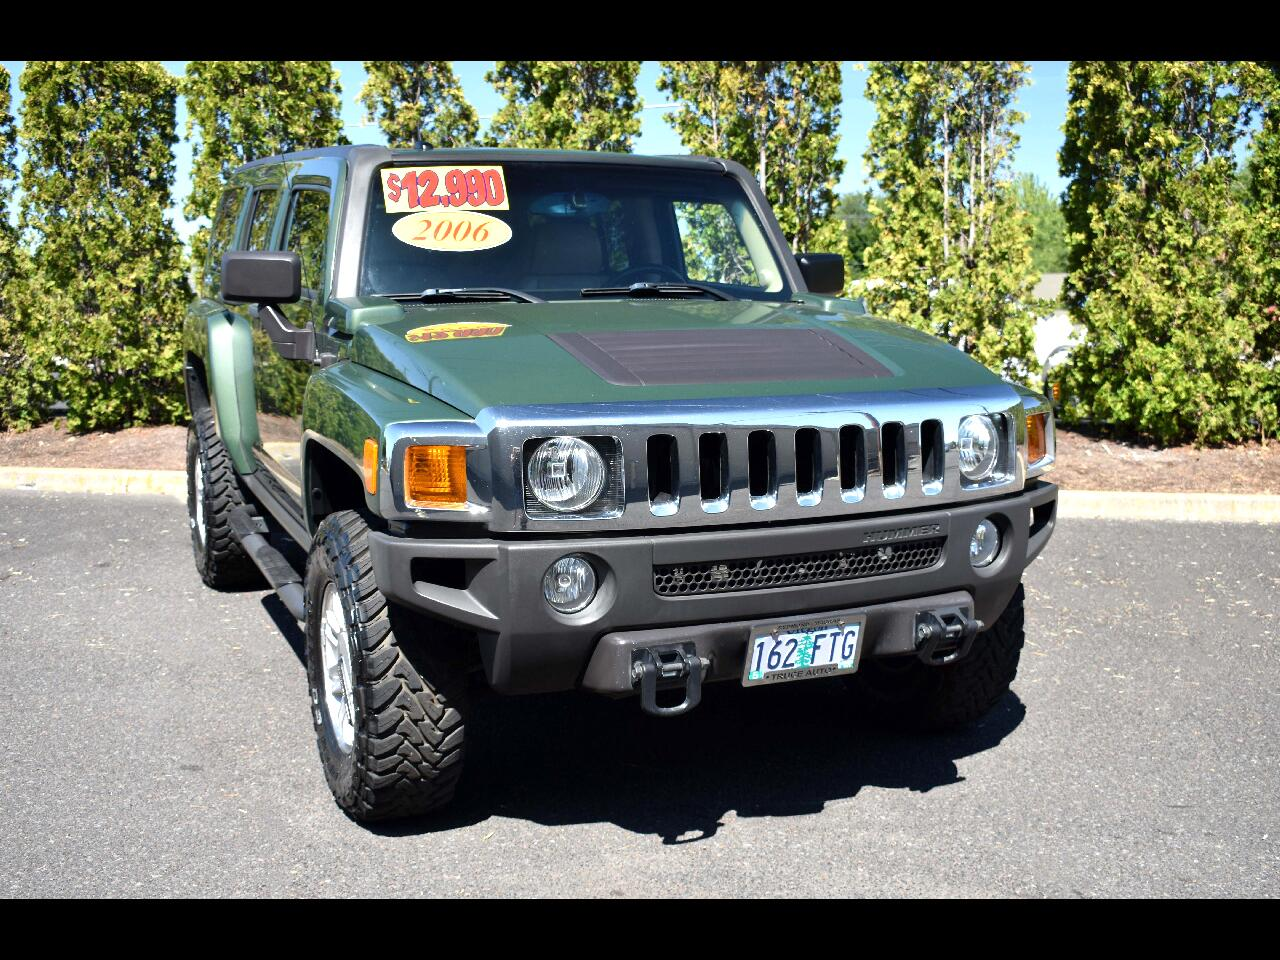 2006 HUMMER H3 4dr 4WD SUV**LOW MILES**